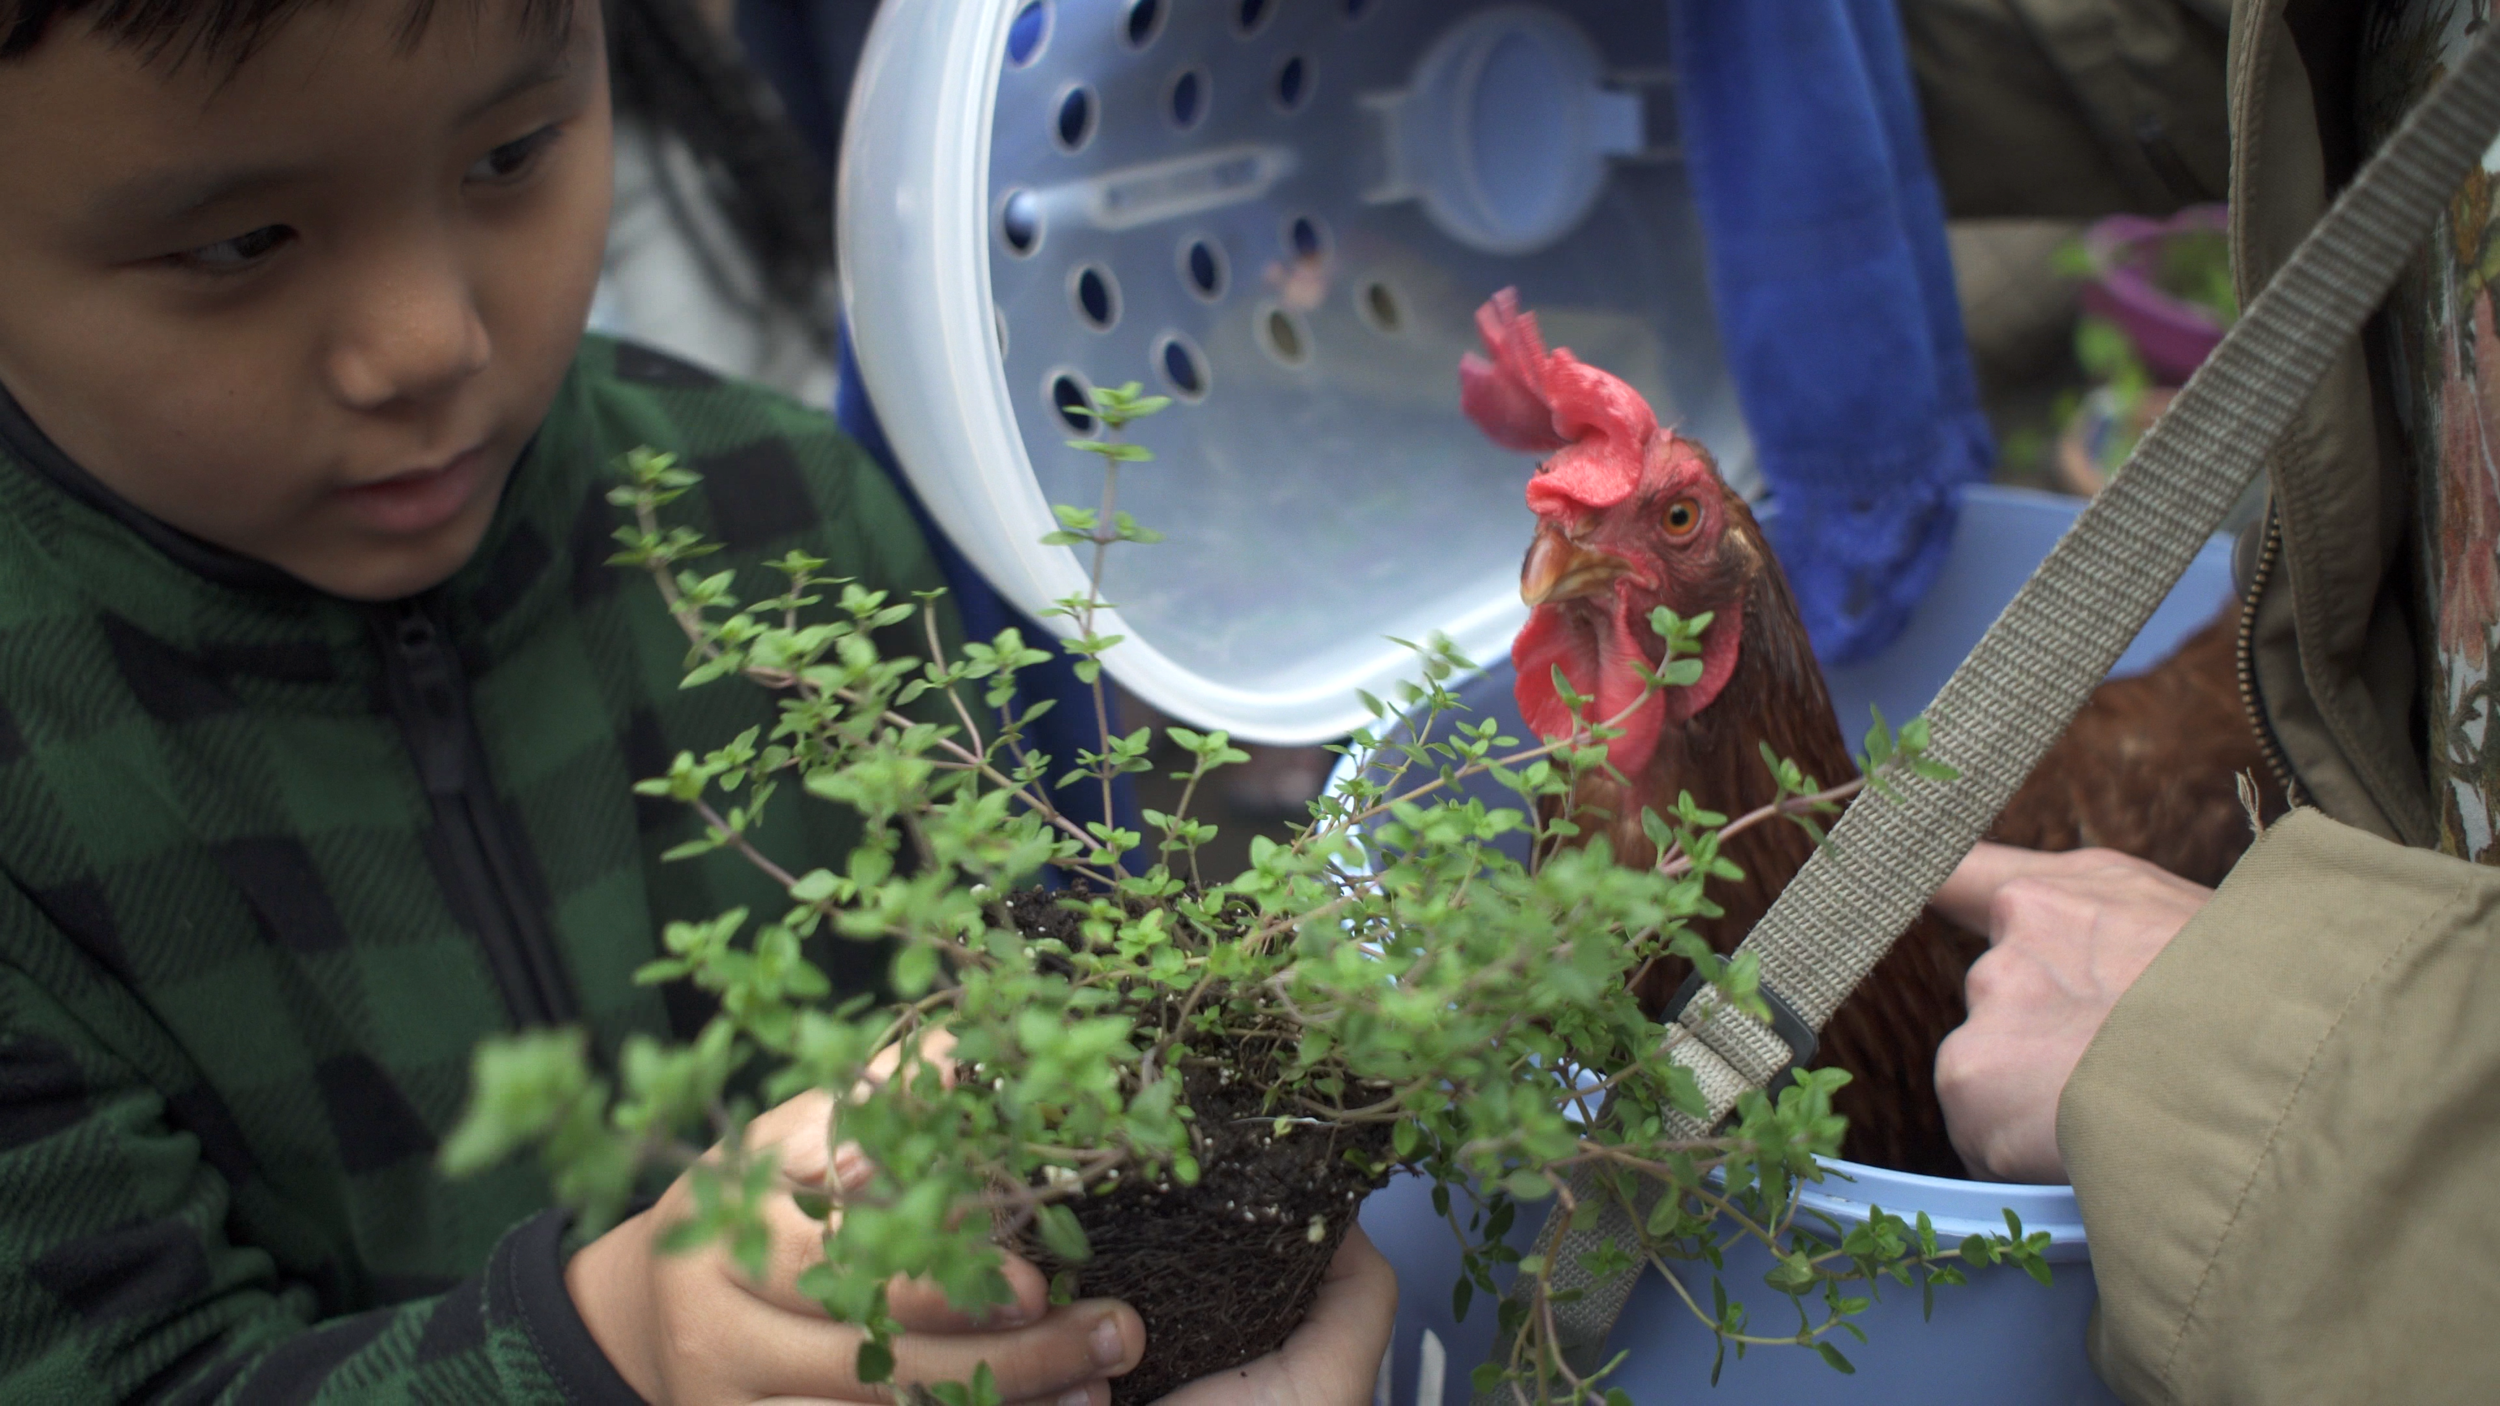 One of the students was fascinated at how quickly Kippee would consume his thyme plant.